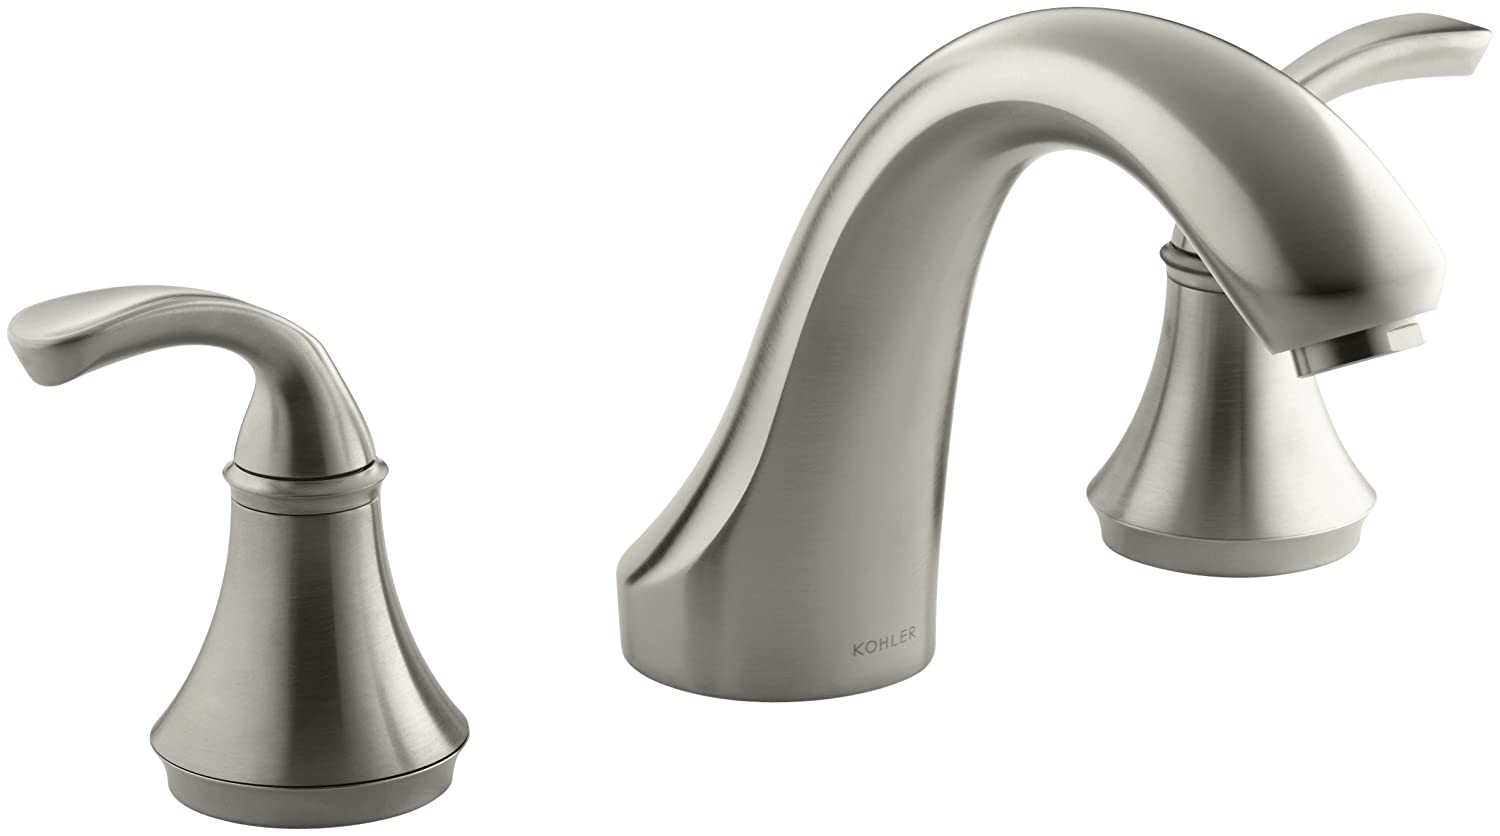 kohler roman tub faucet with hand shower. KOHLER K T10278 4 BN Forte Bath  or Deck Mount Rim Valve Trim Vibrant Brushed Nickel Faucet Kits Amazon com